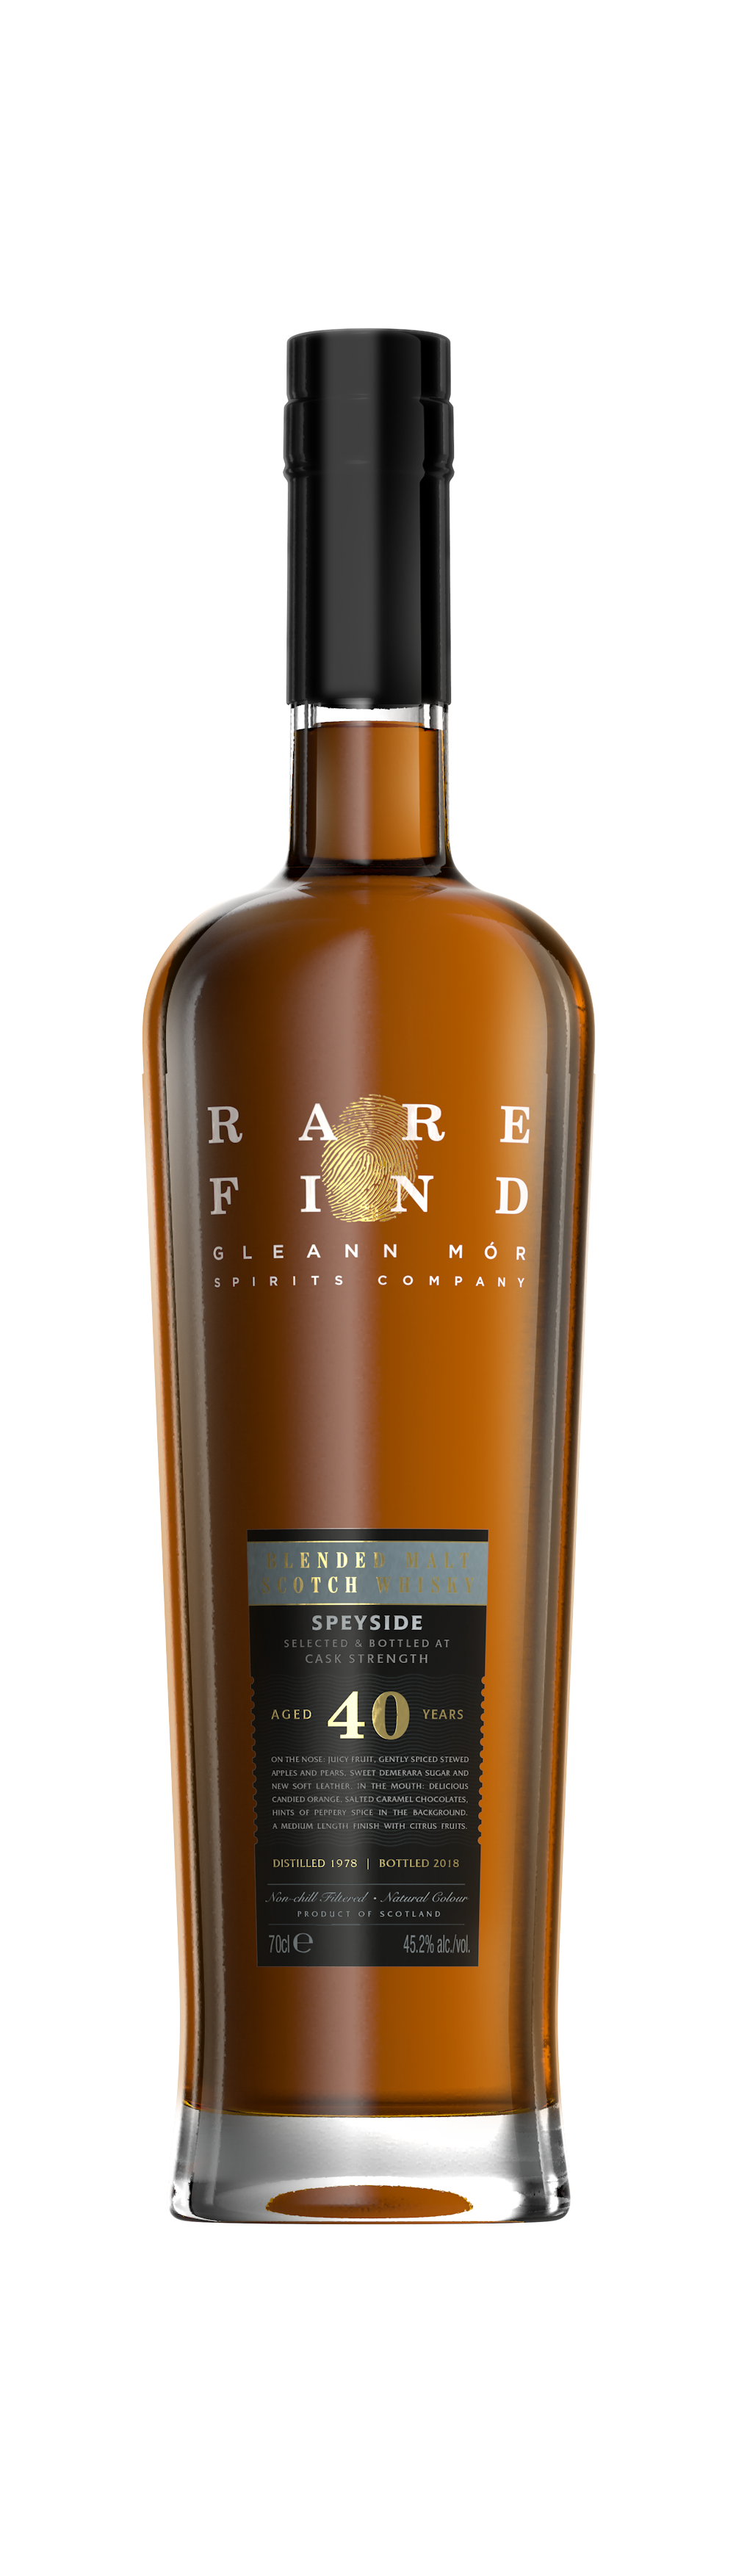 40 year old blended whisky